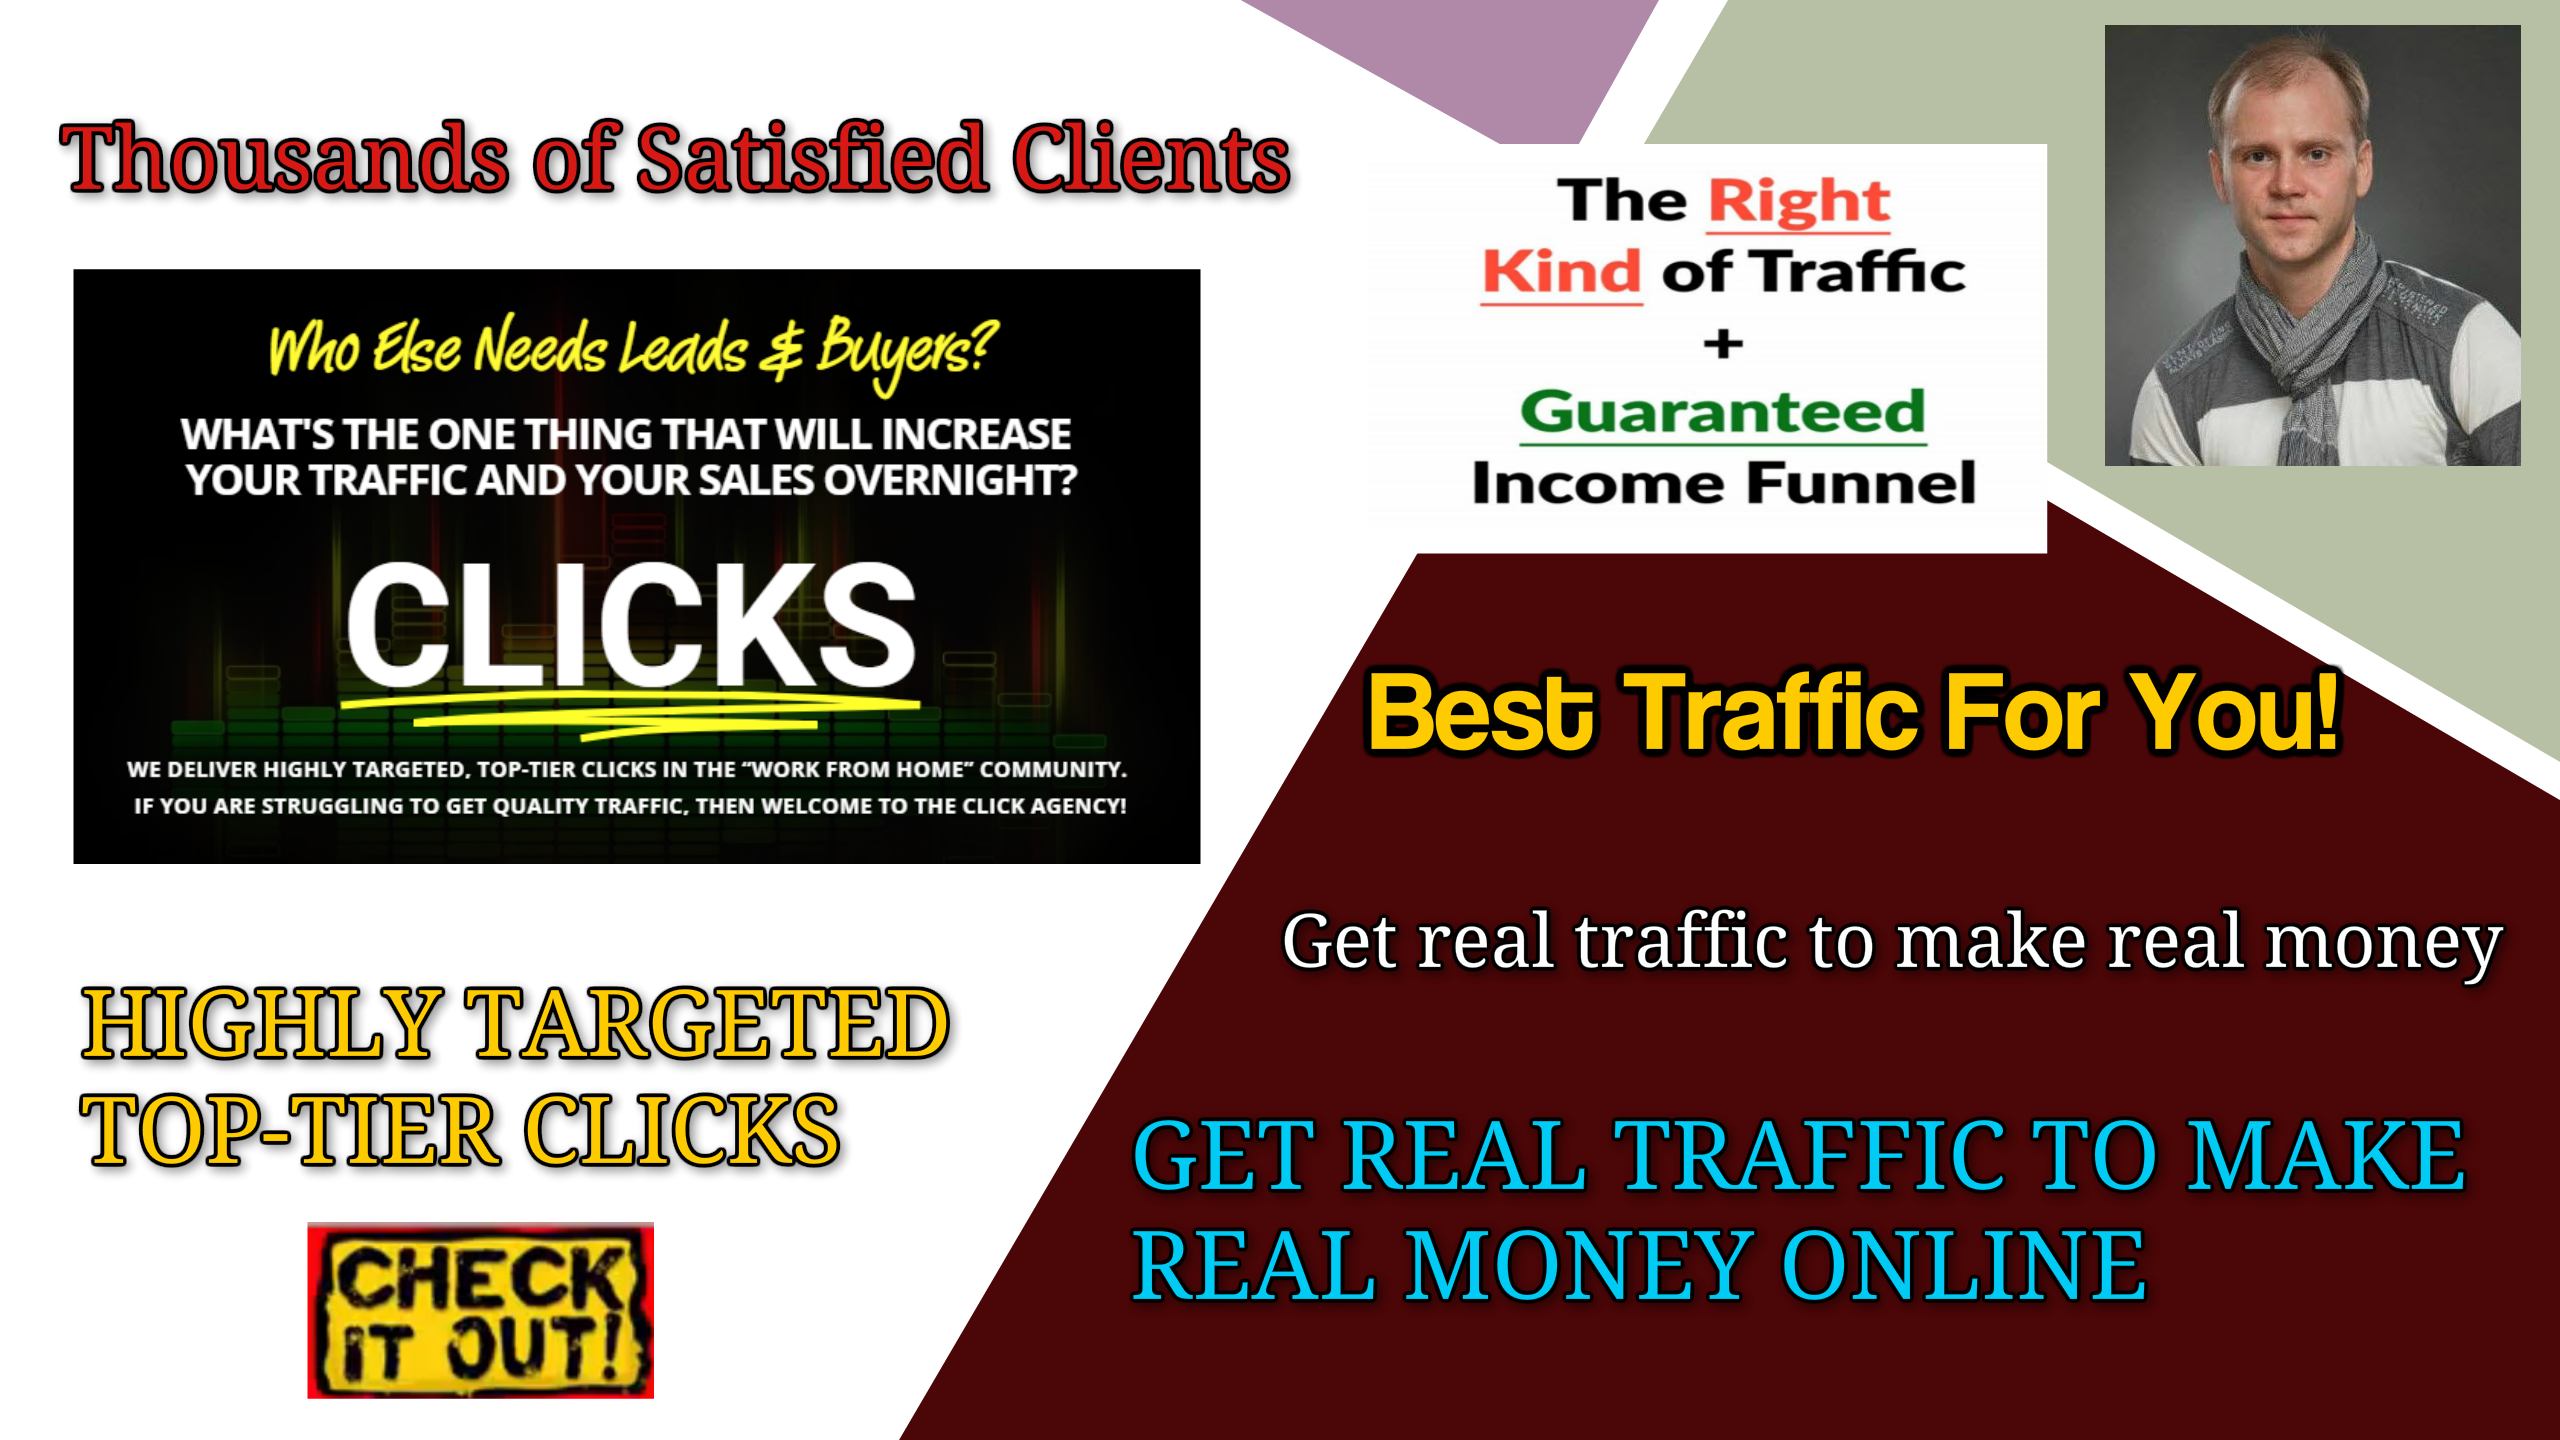 GET REAL TRAFFIC TO MAKE REAL MONEY ONLINE